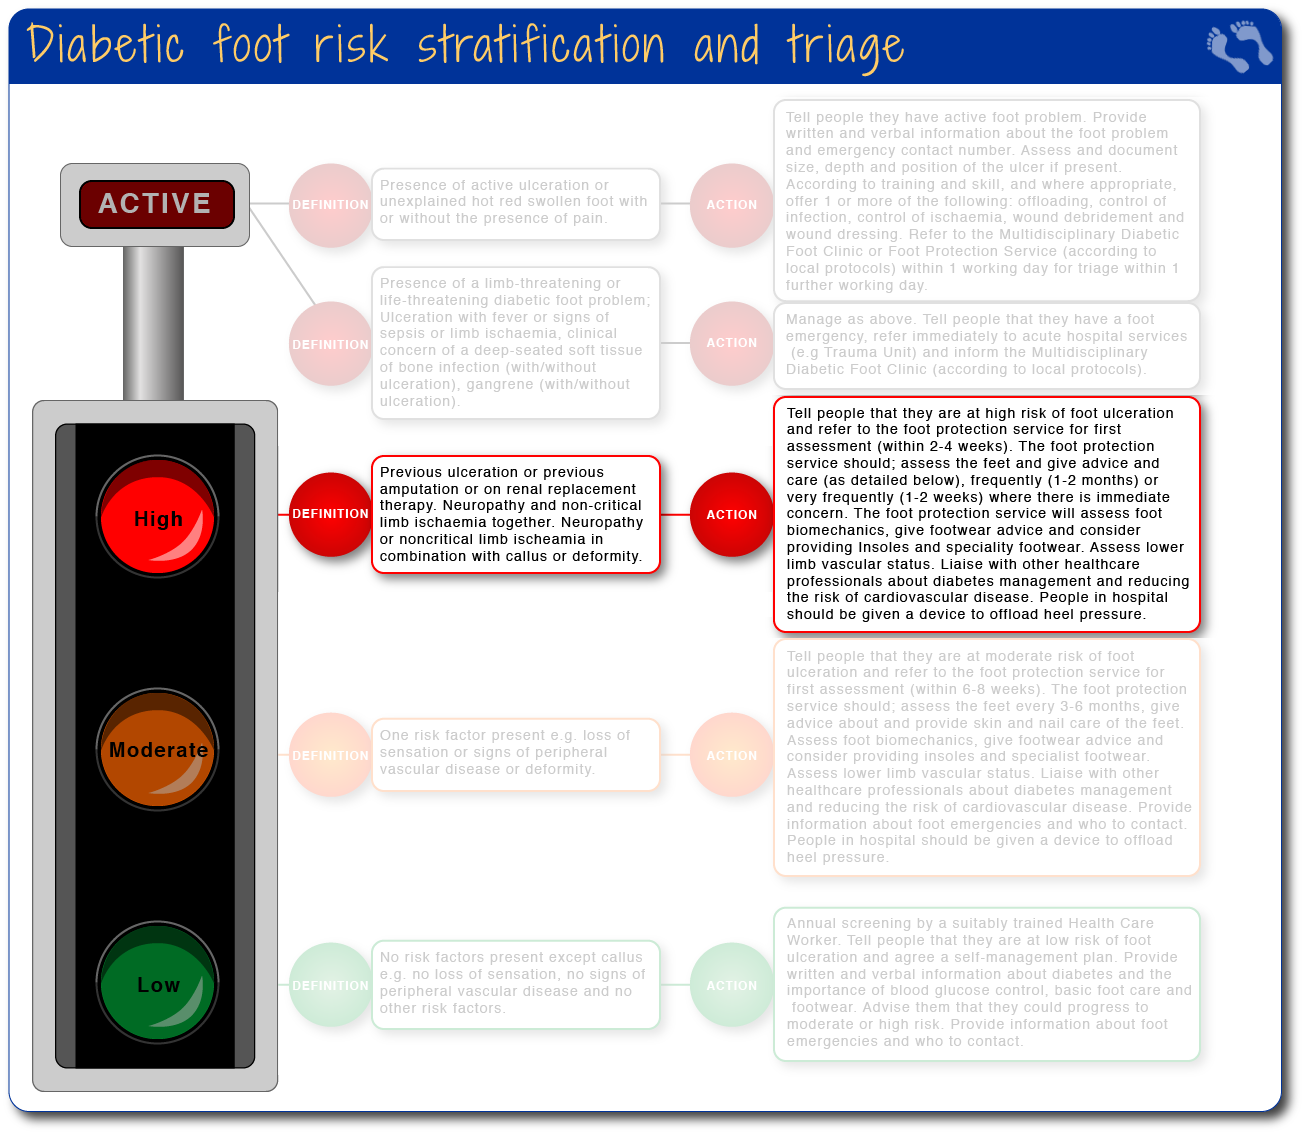 Diabetic foot risk stratification and triage - high risk